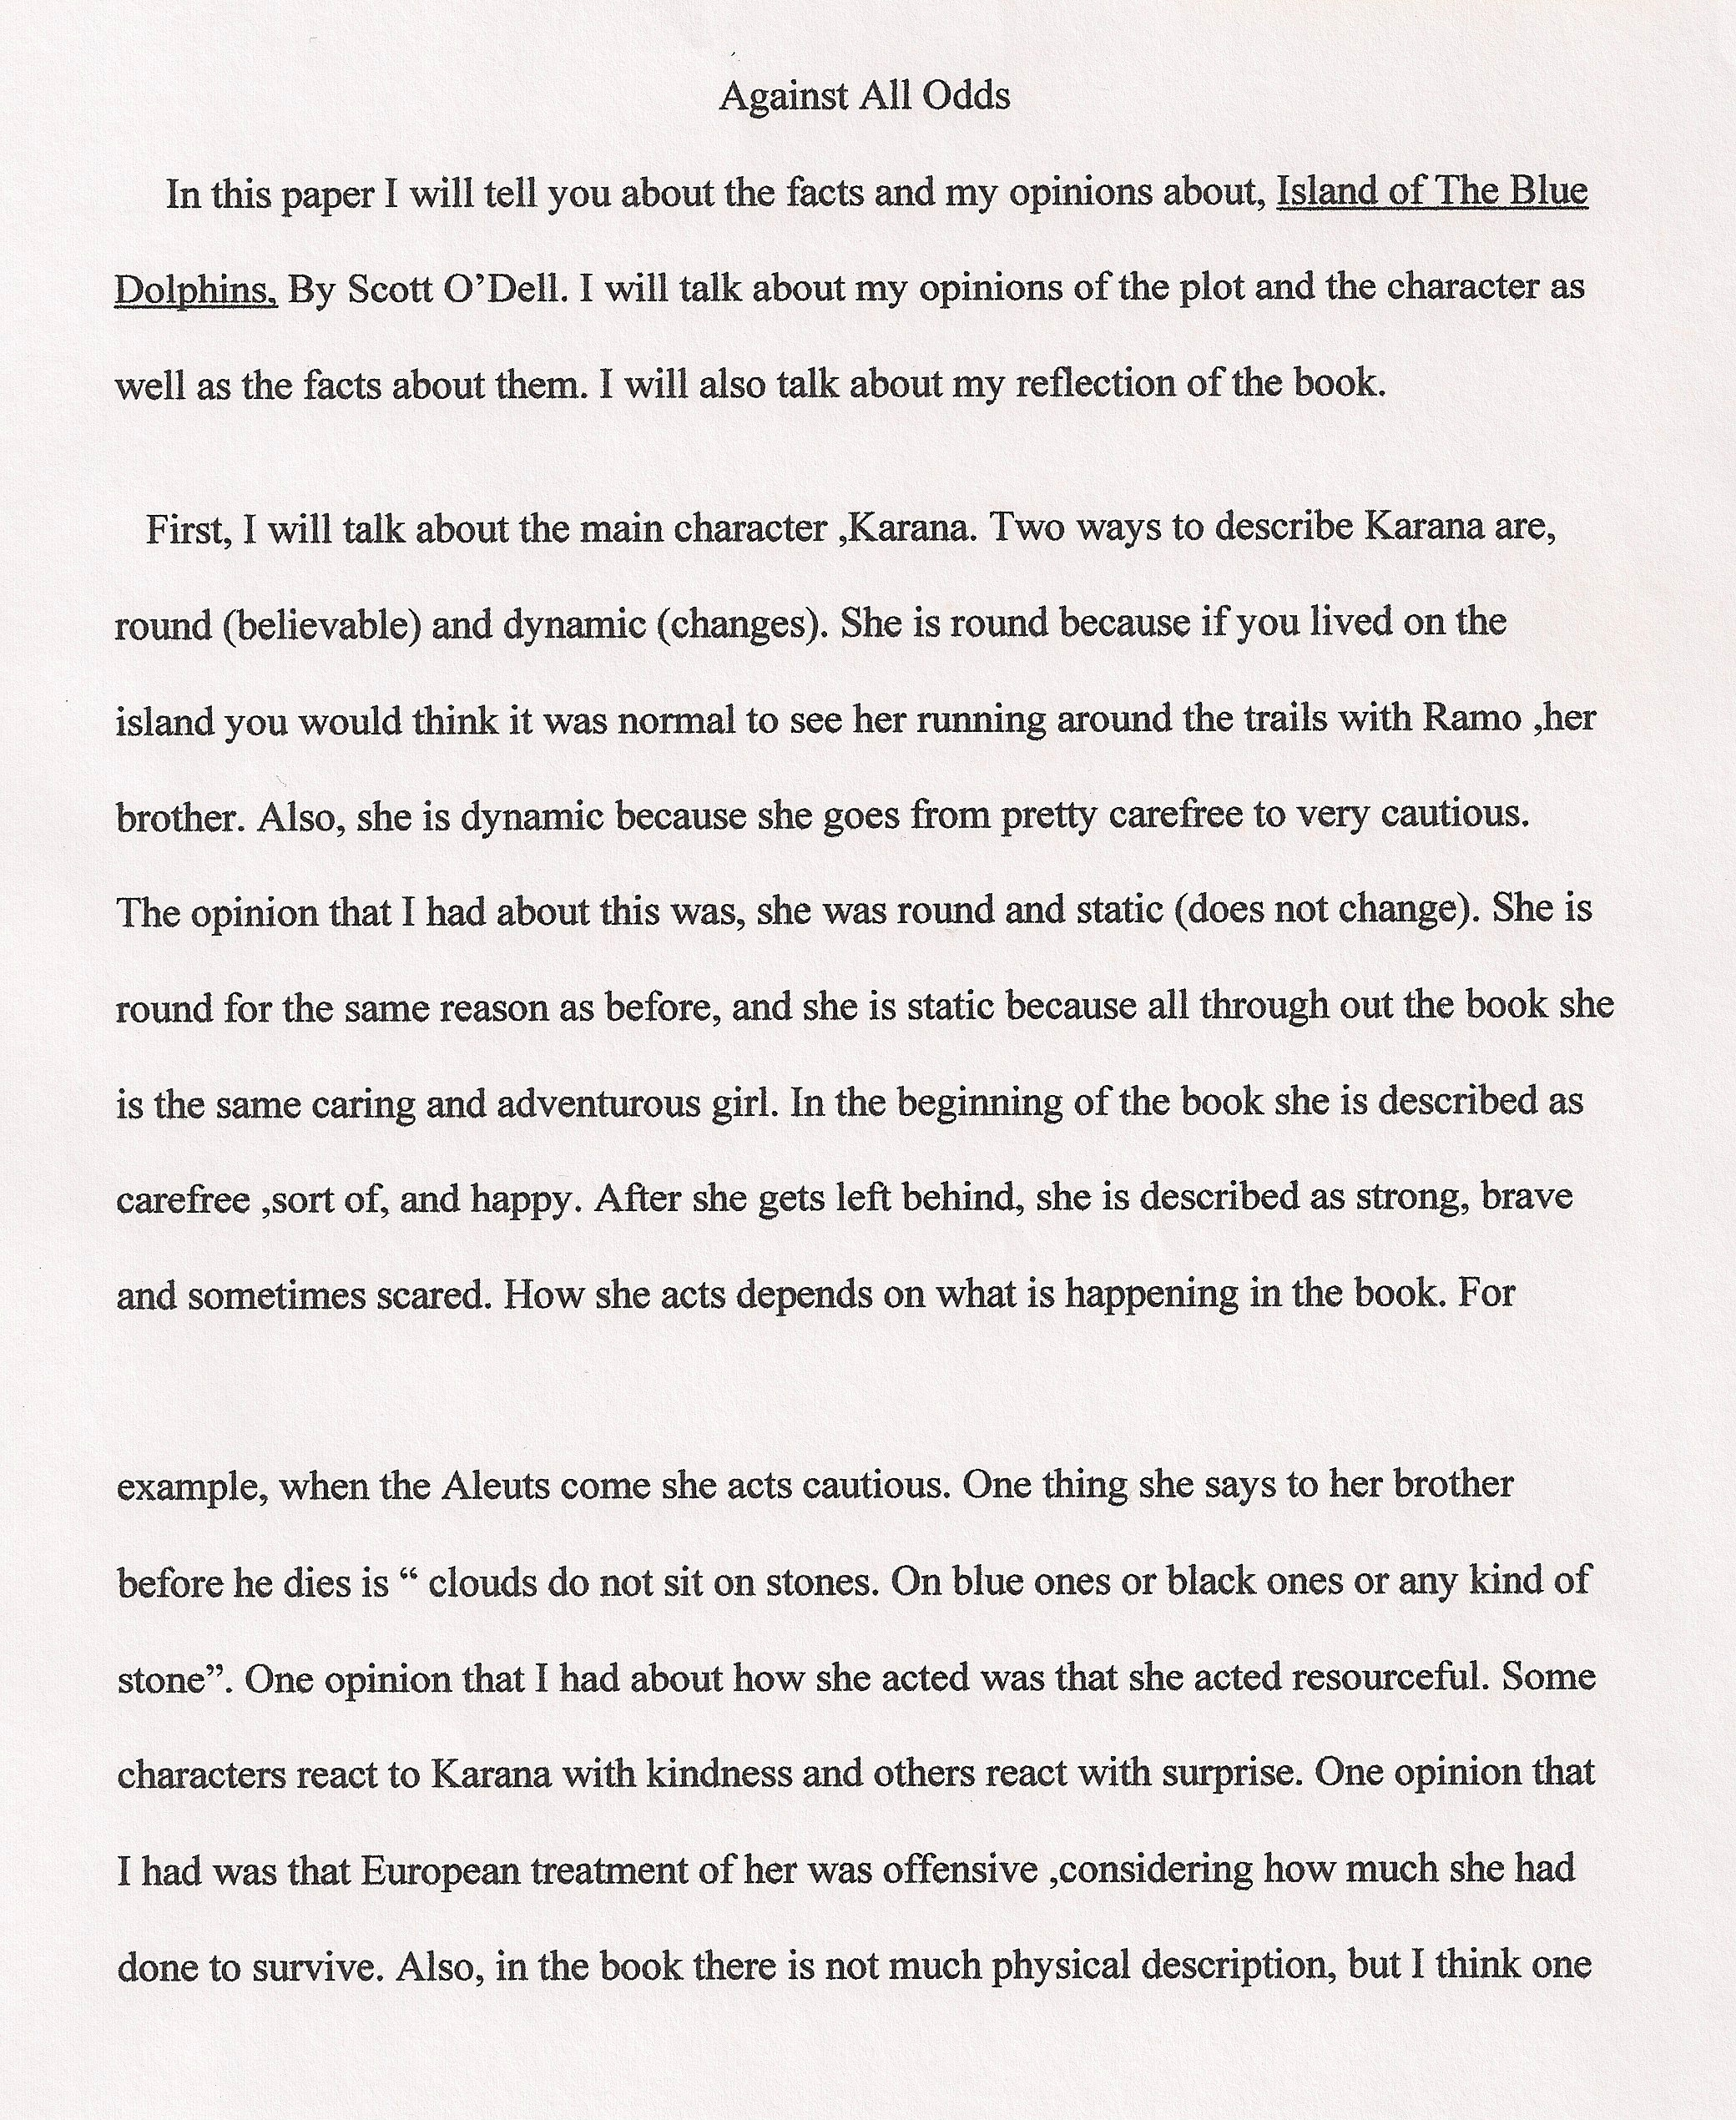 004 Essay Example 6th Grade Examples Against All Odds Fantastic Narrative Writing Literary Full